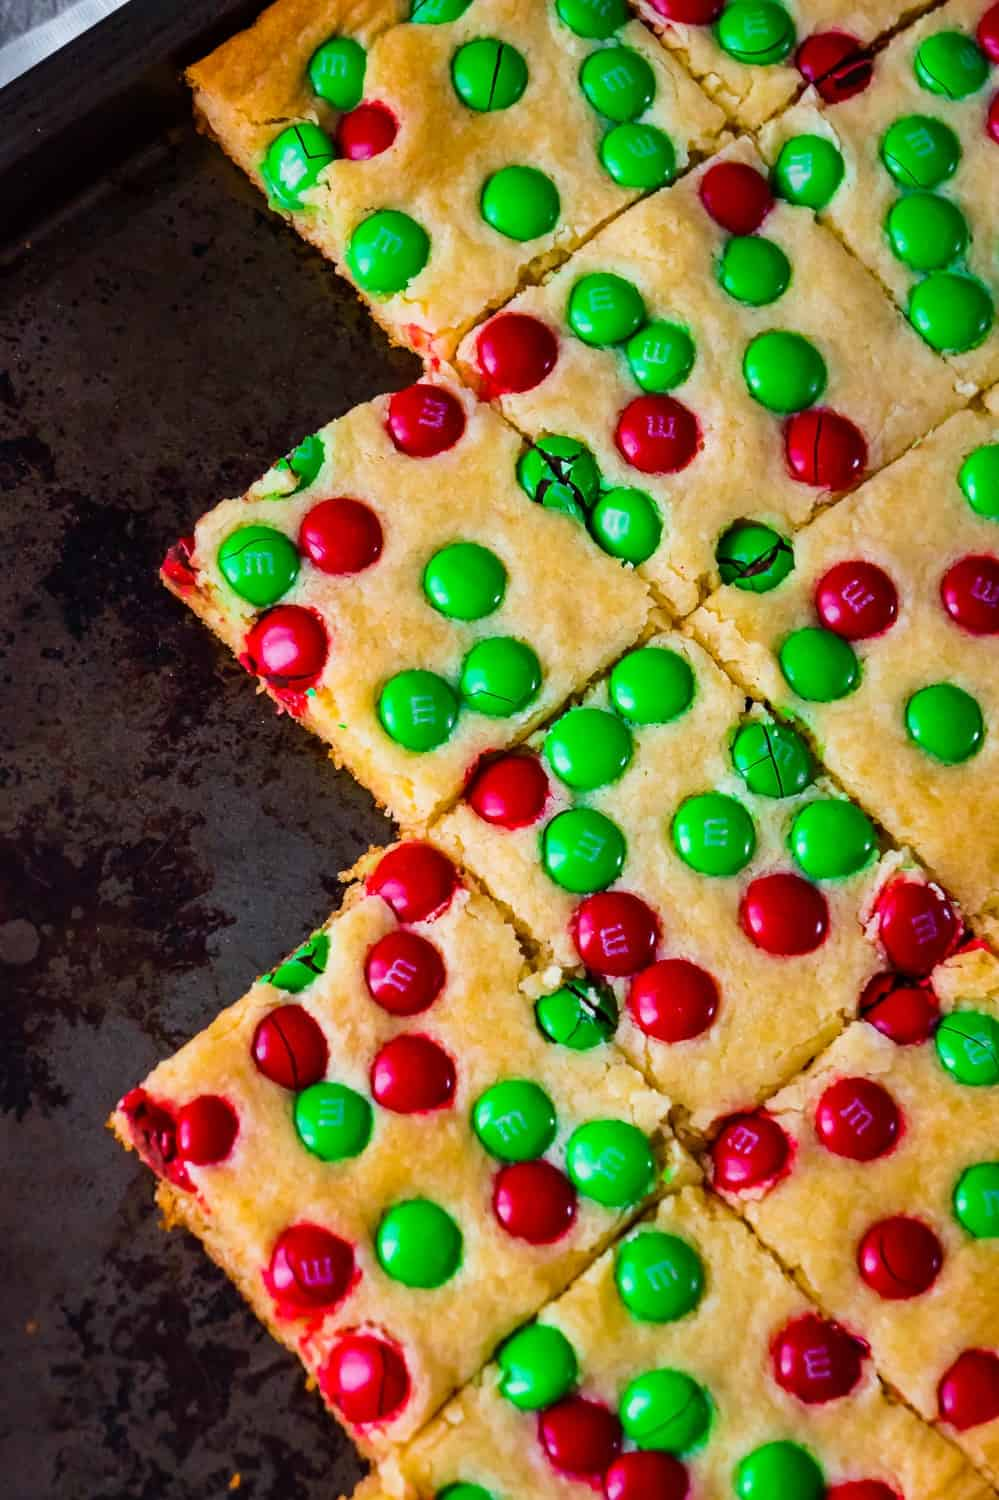 Christmas Cookie Bars are an easy holiday dessert recipe. These vanilla pudding sugar cookie bars are loaded with red and green M&M's.